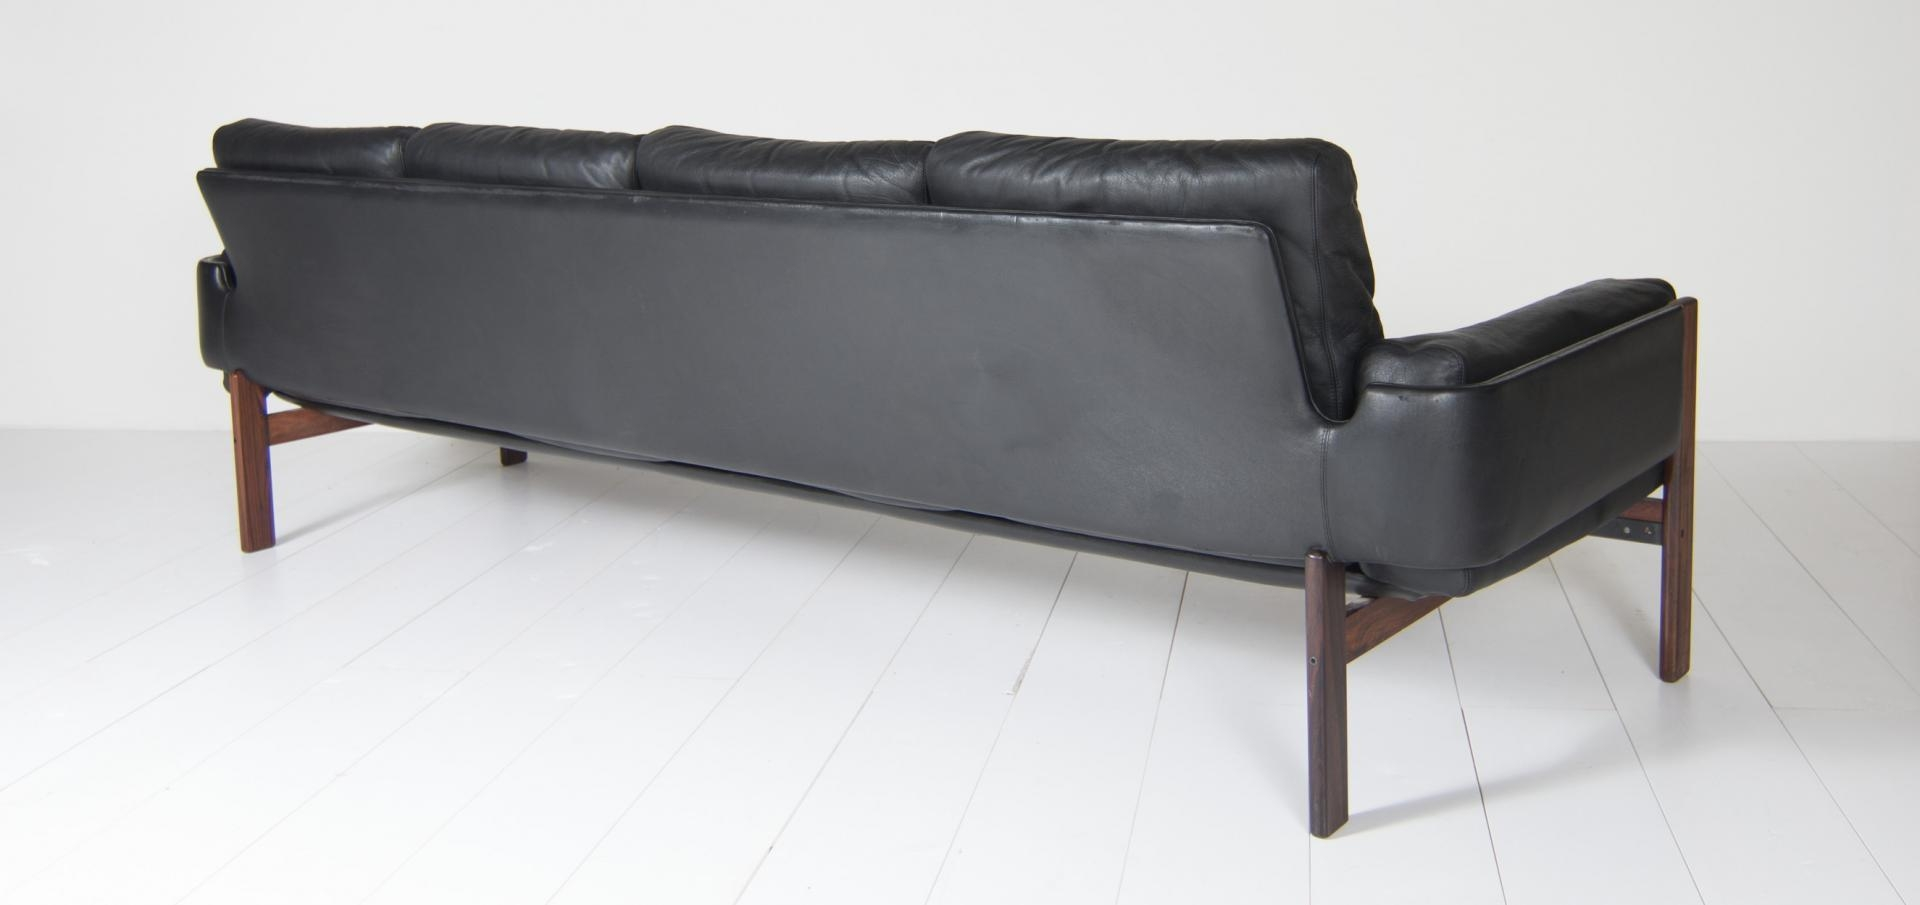 Four Seater Black Leather Sofasven Ivar Dysthe For Dokka For Pertaining To 4 Seat Leather Sofas (View 14 of 20)